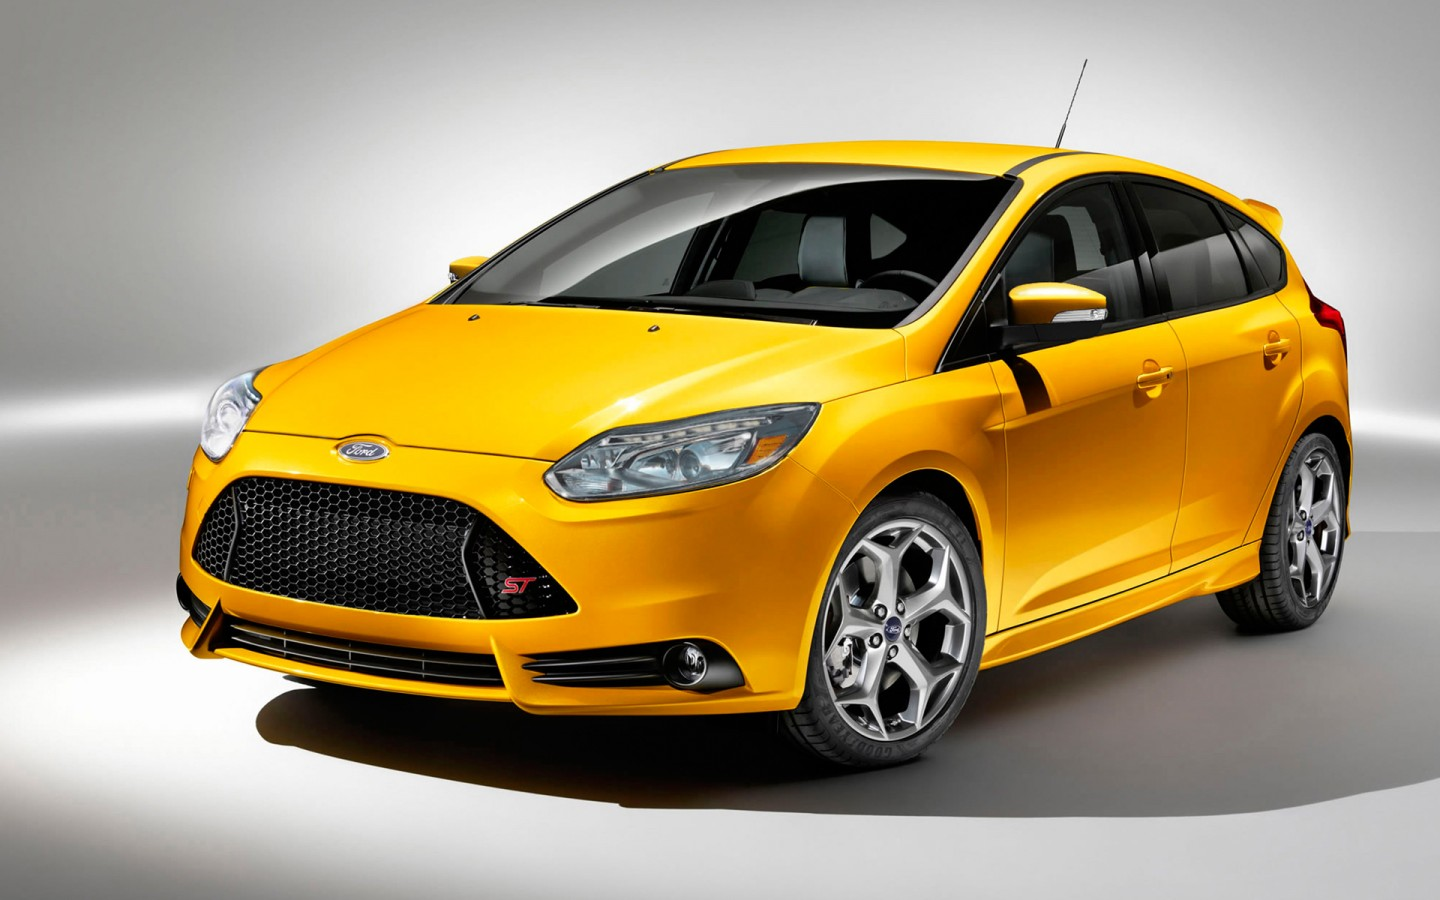 2013 ford focus st wallpaper hd car wallpapers id 2893. Black Bedroom Furniture Sets. Home Design Ideas